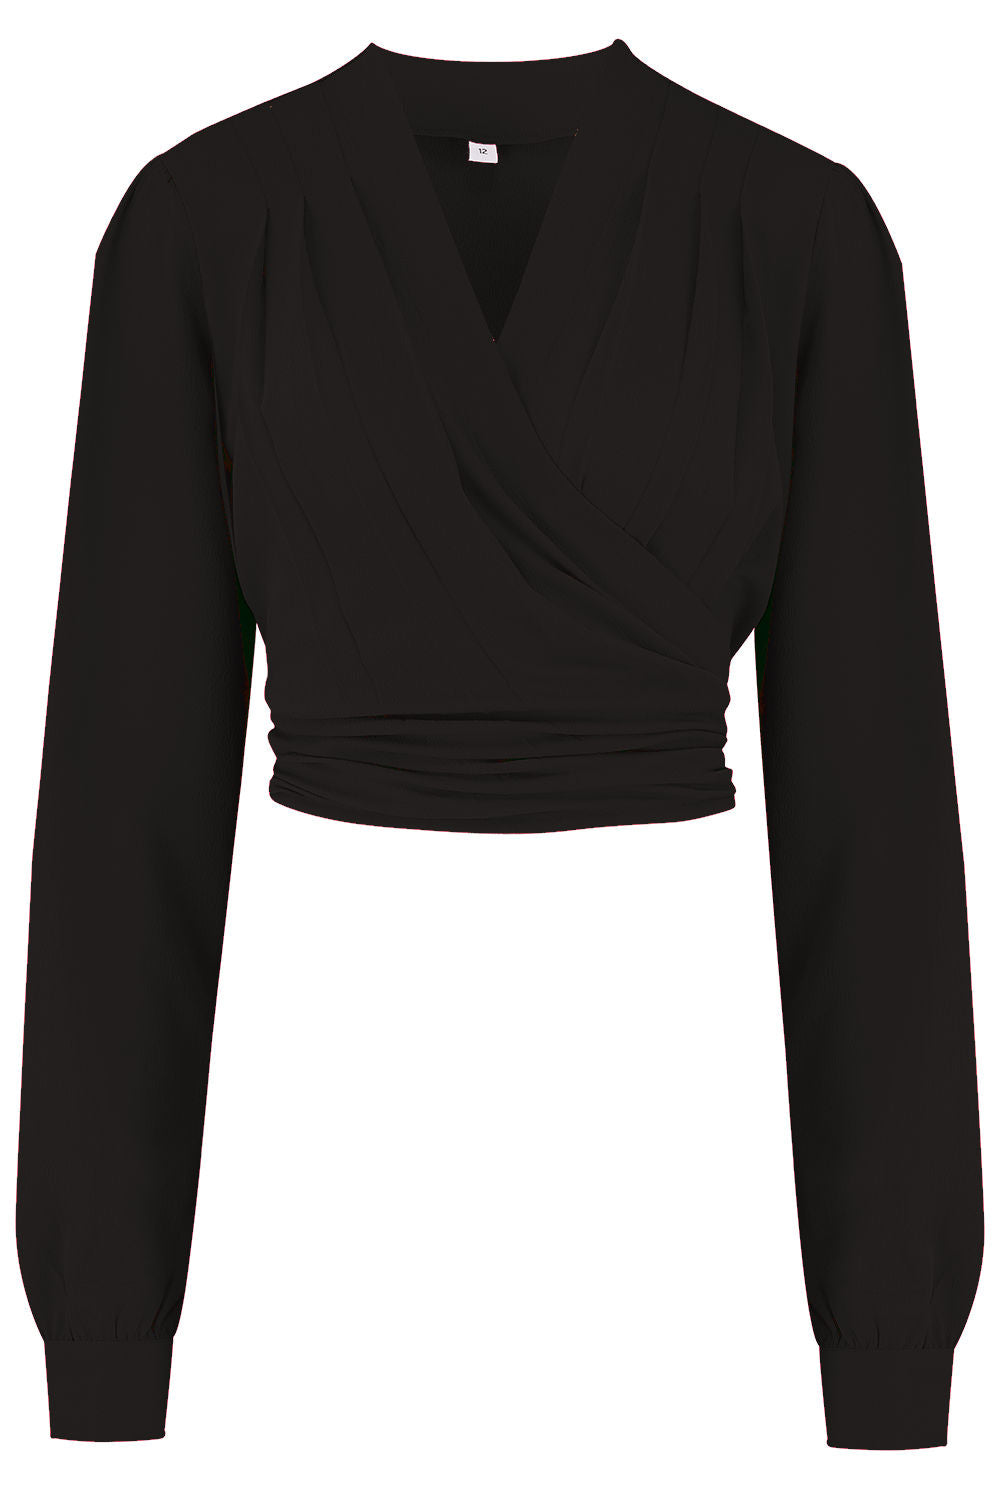 50s Shirts & Tops Pre-Order The Darla Long Sleeve Wrap Blouse in Black True Vintage Style £29.00 AT vintagedancer.com